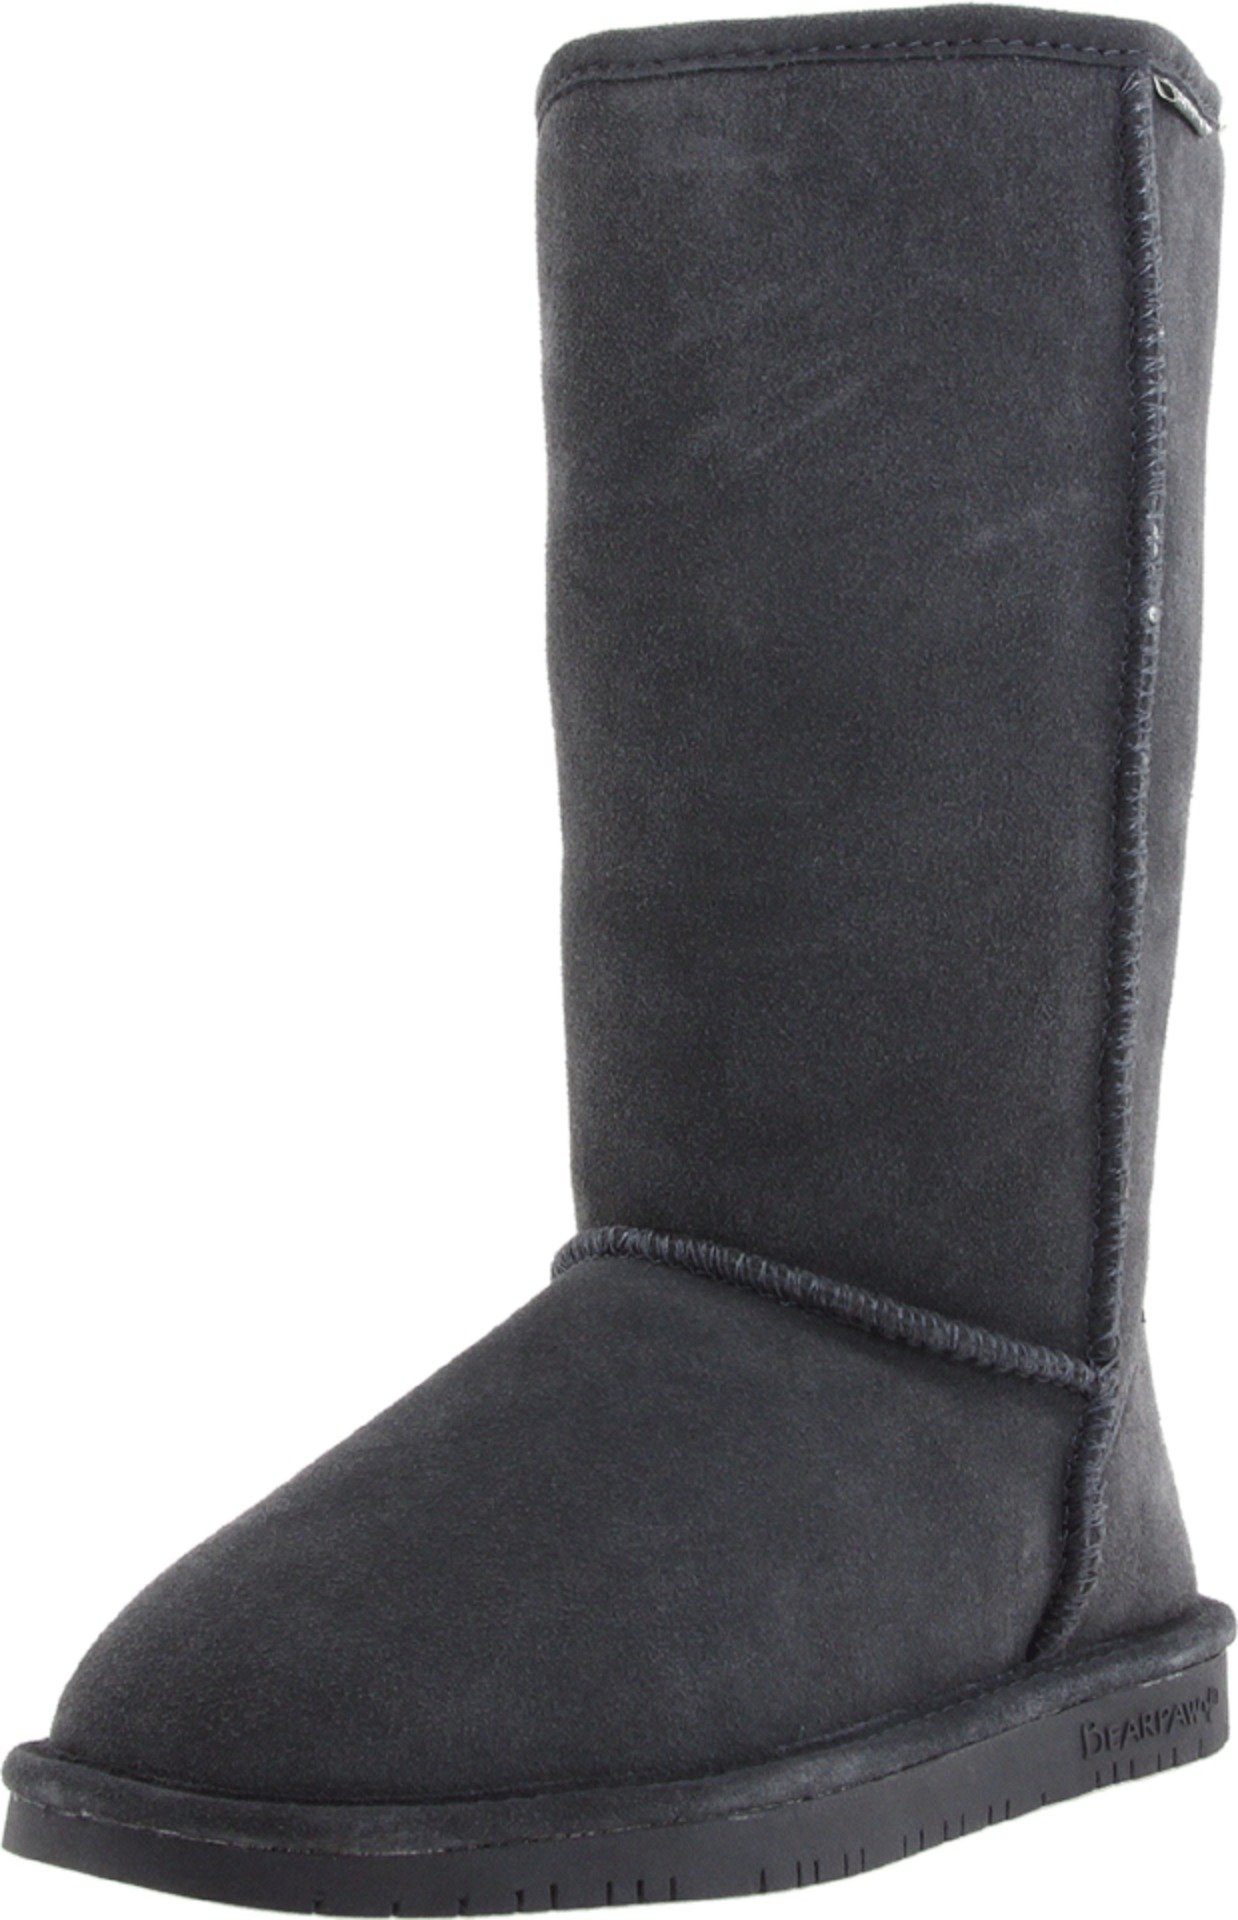 BEARPAW Women's Emma Tall Winter Boot, Charcoal, 9 M US by BEARPAW (Image #1)